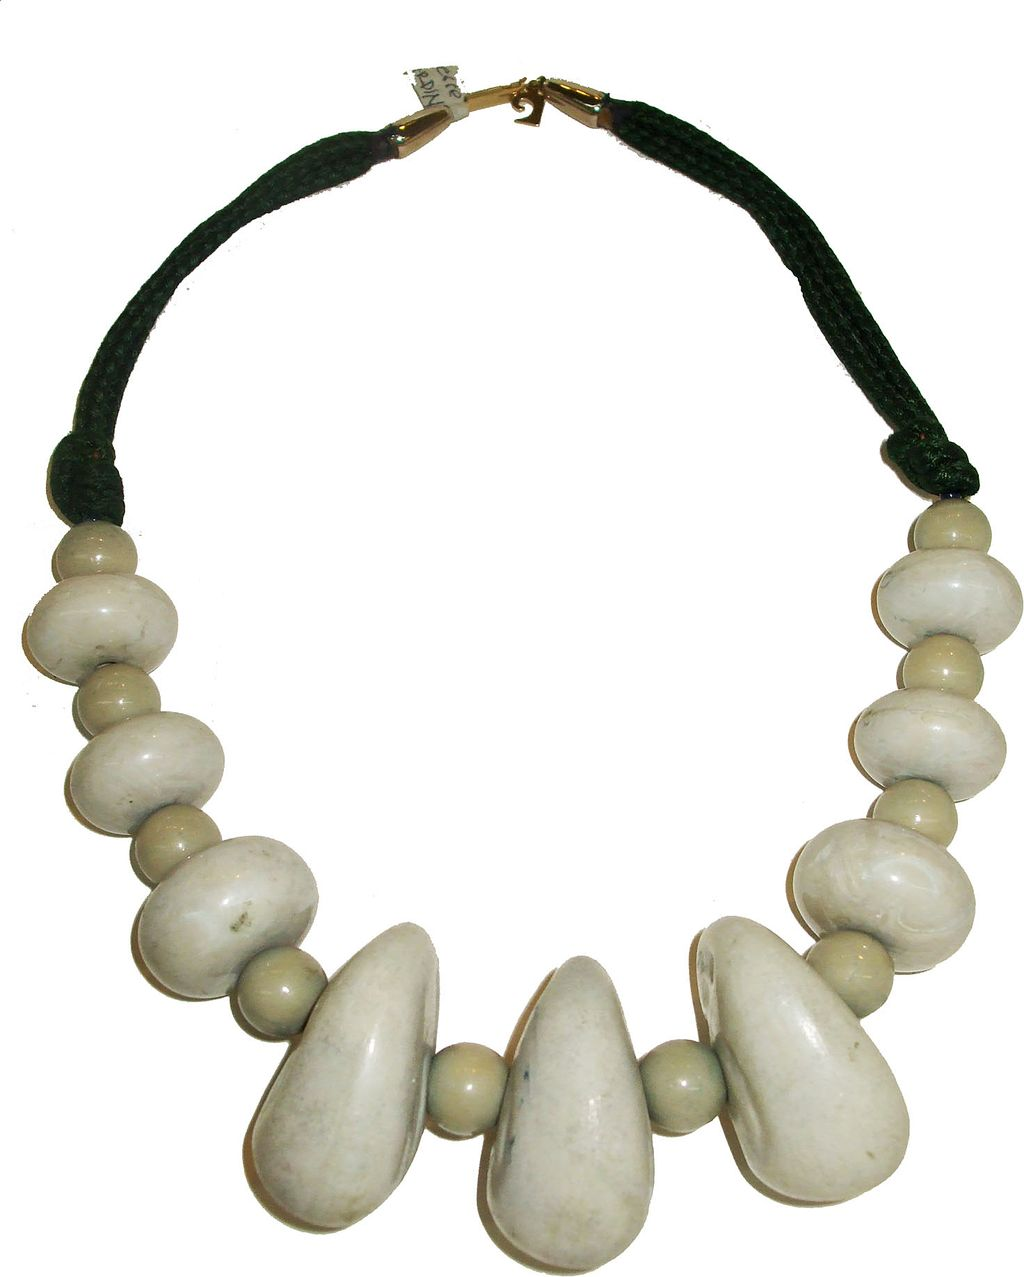 PIERRE CARDIN 1960s Flintstone's Cave Man Modernist Clay Bead and Rope Necklace